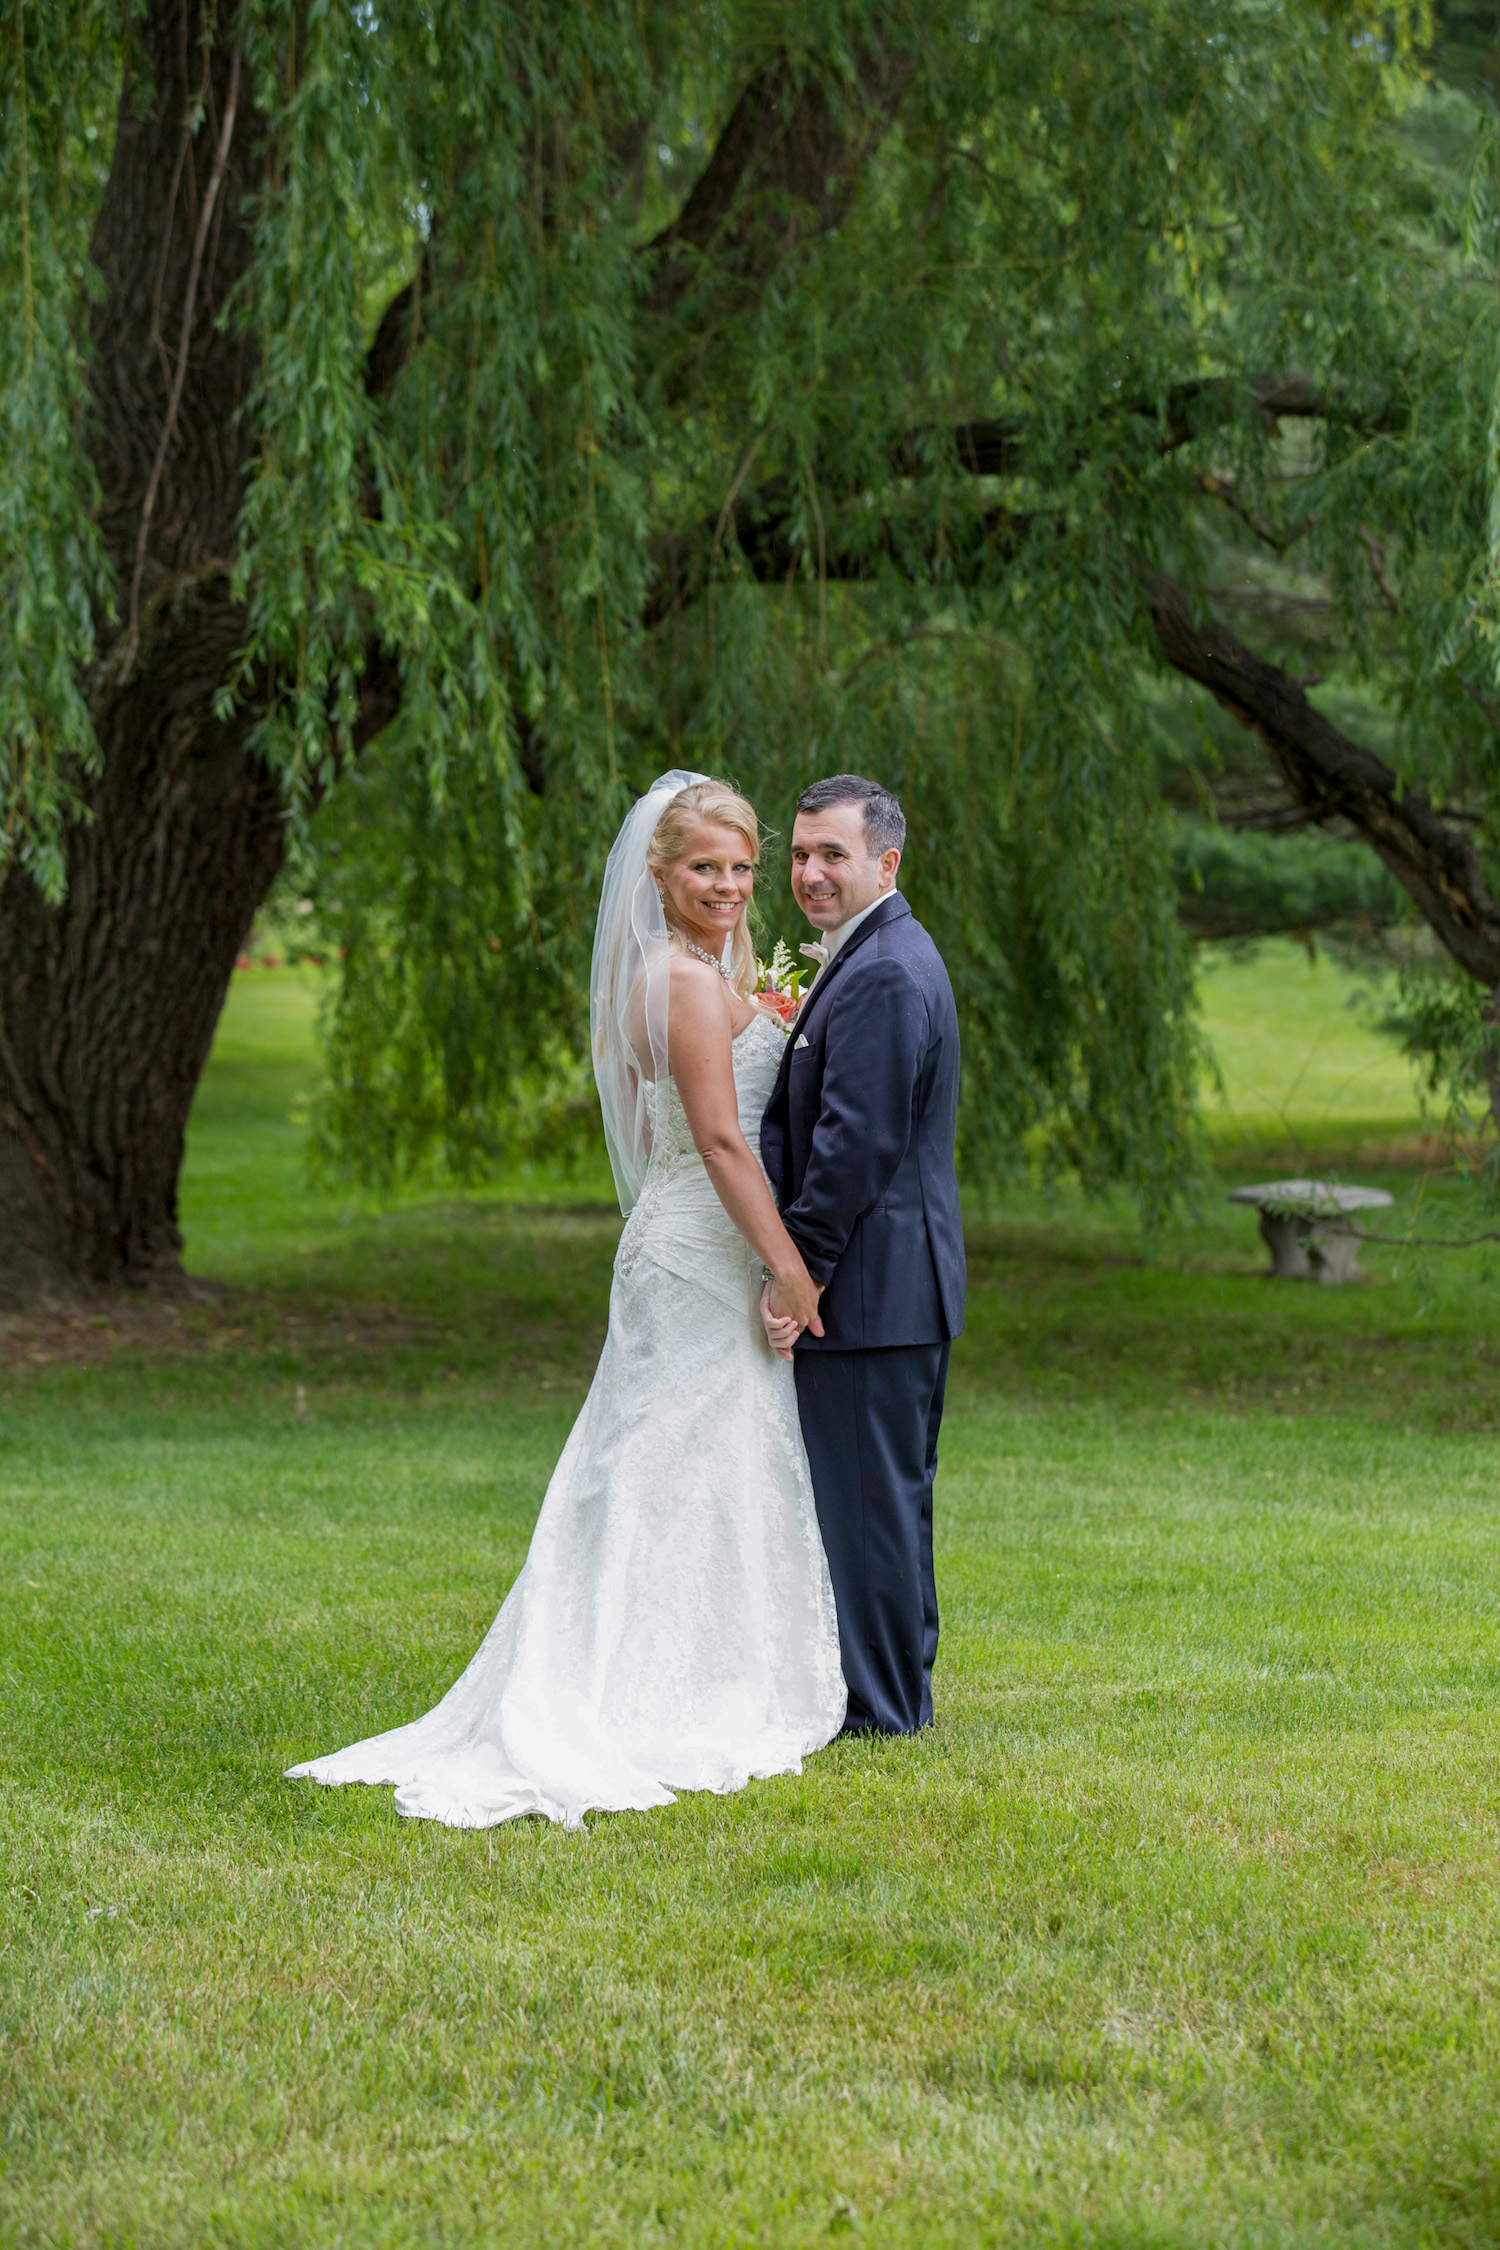 Cindyrellas Garden, outdoor lake ceremony in Minnesota, willow tree